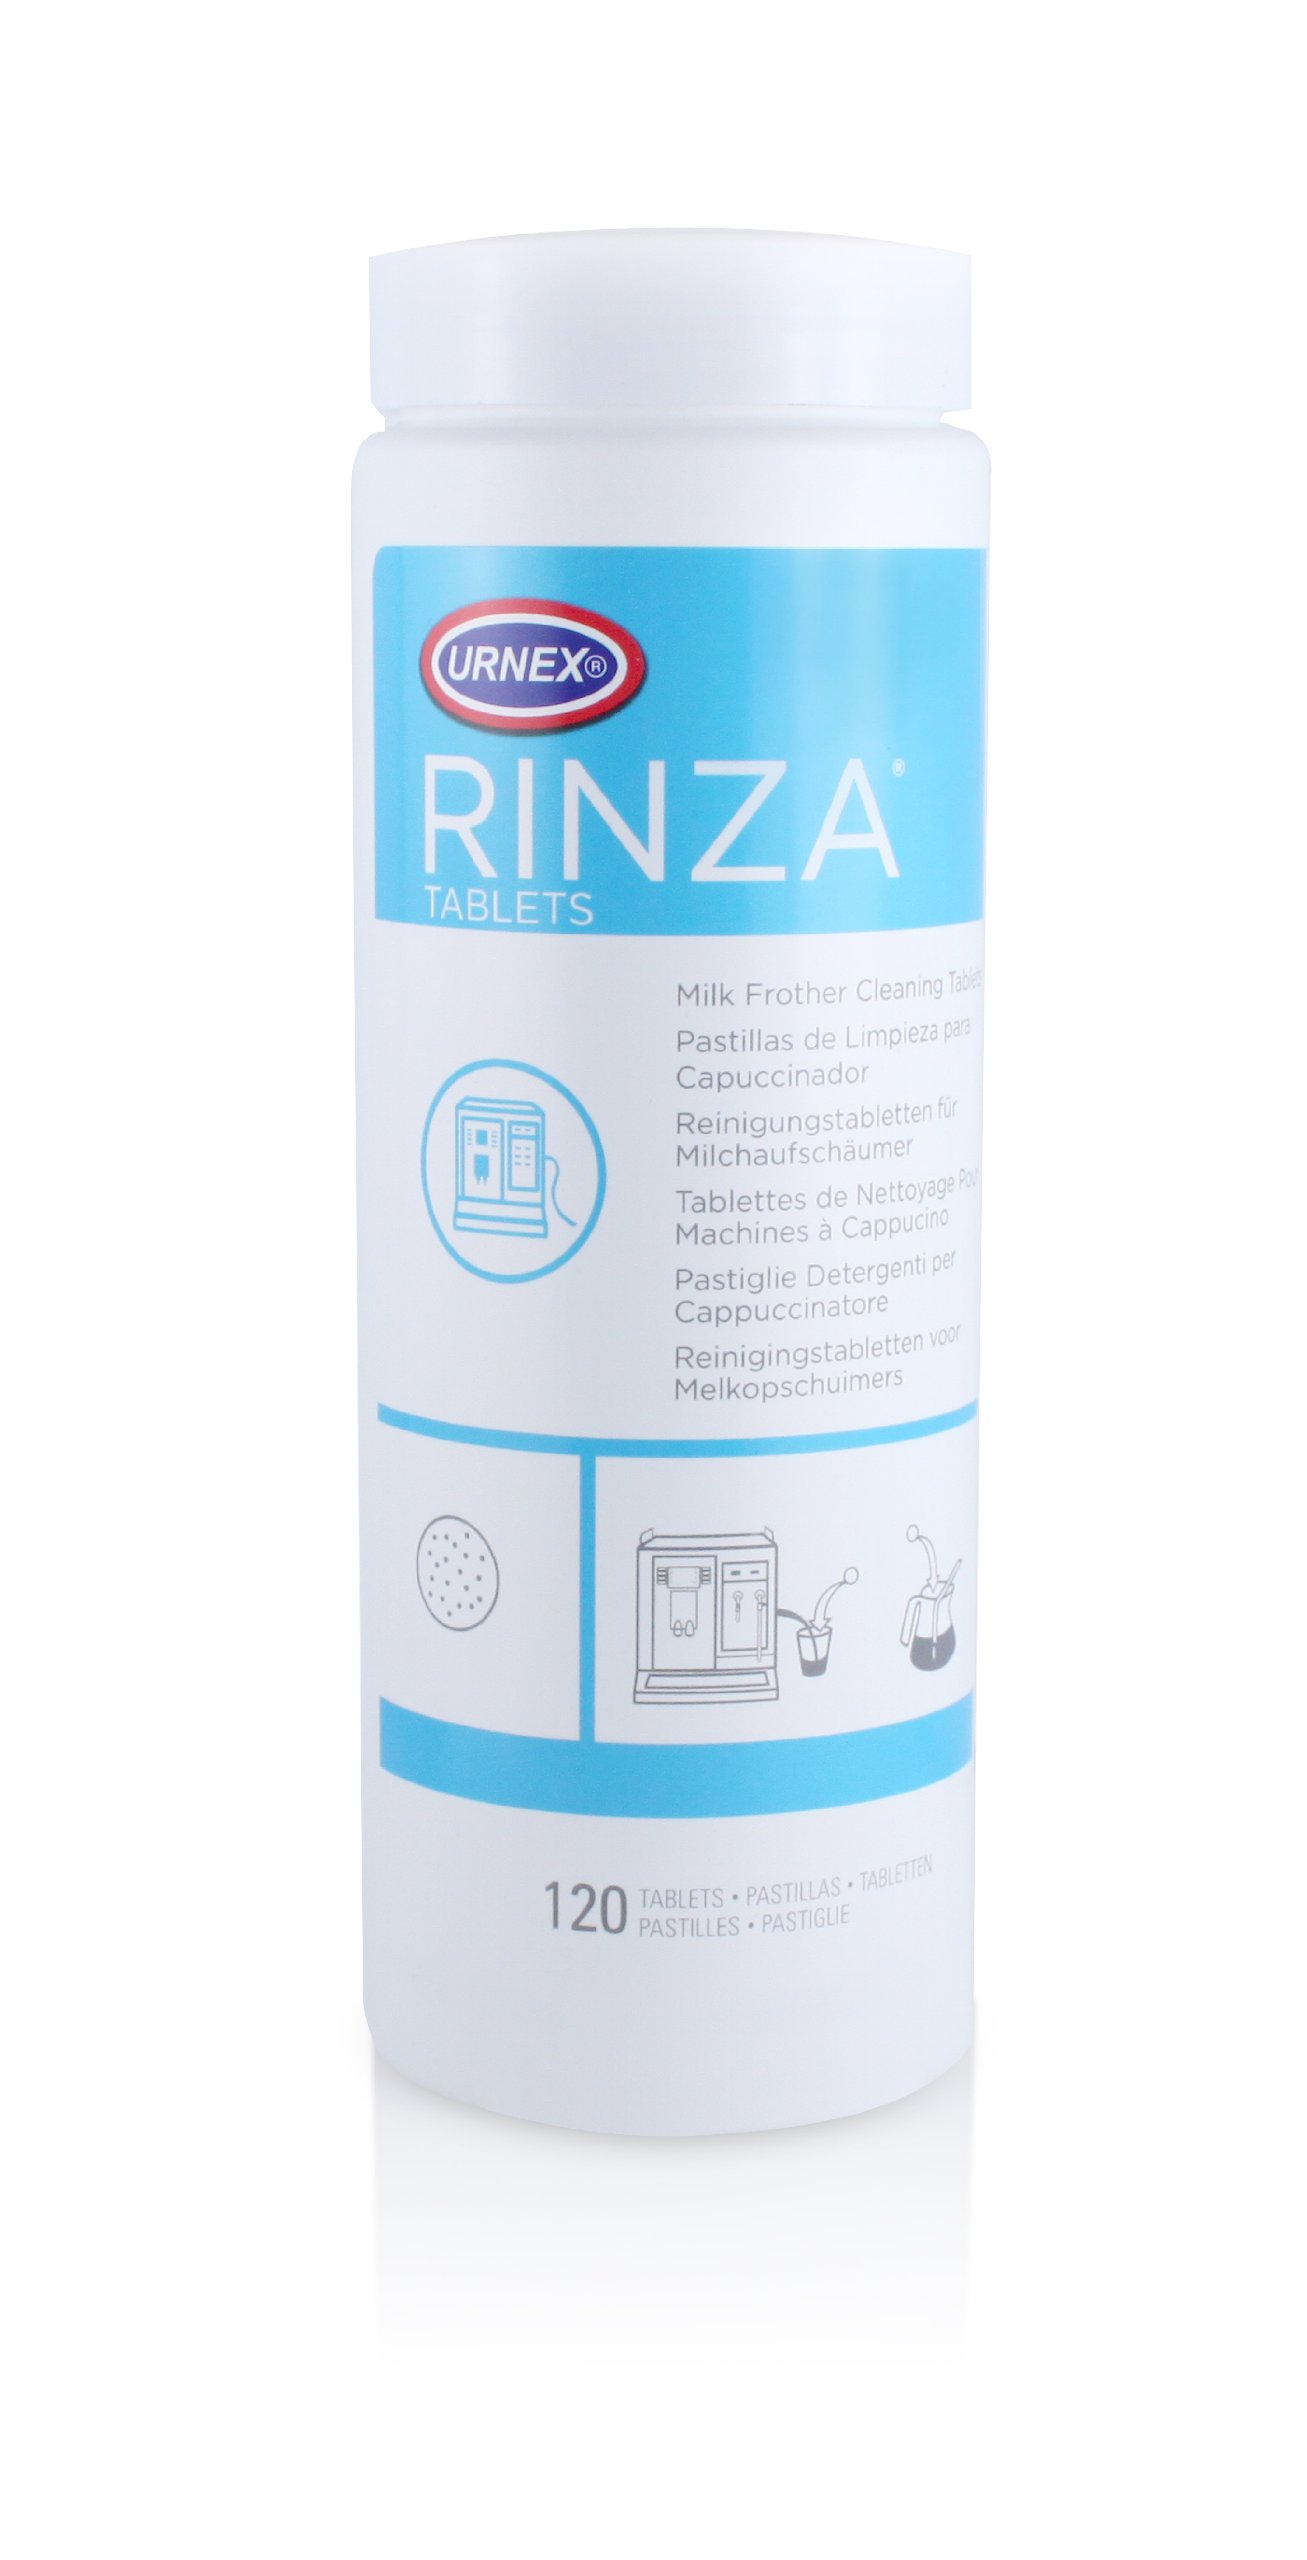 Rinza Milk Frother Cleaning Tablets 120 tablets